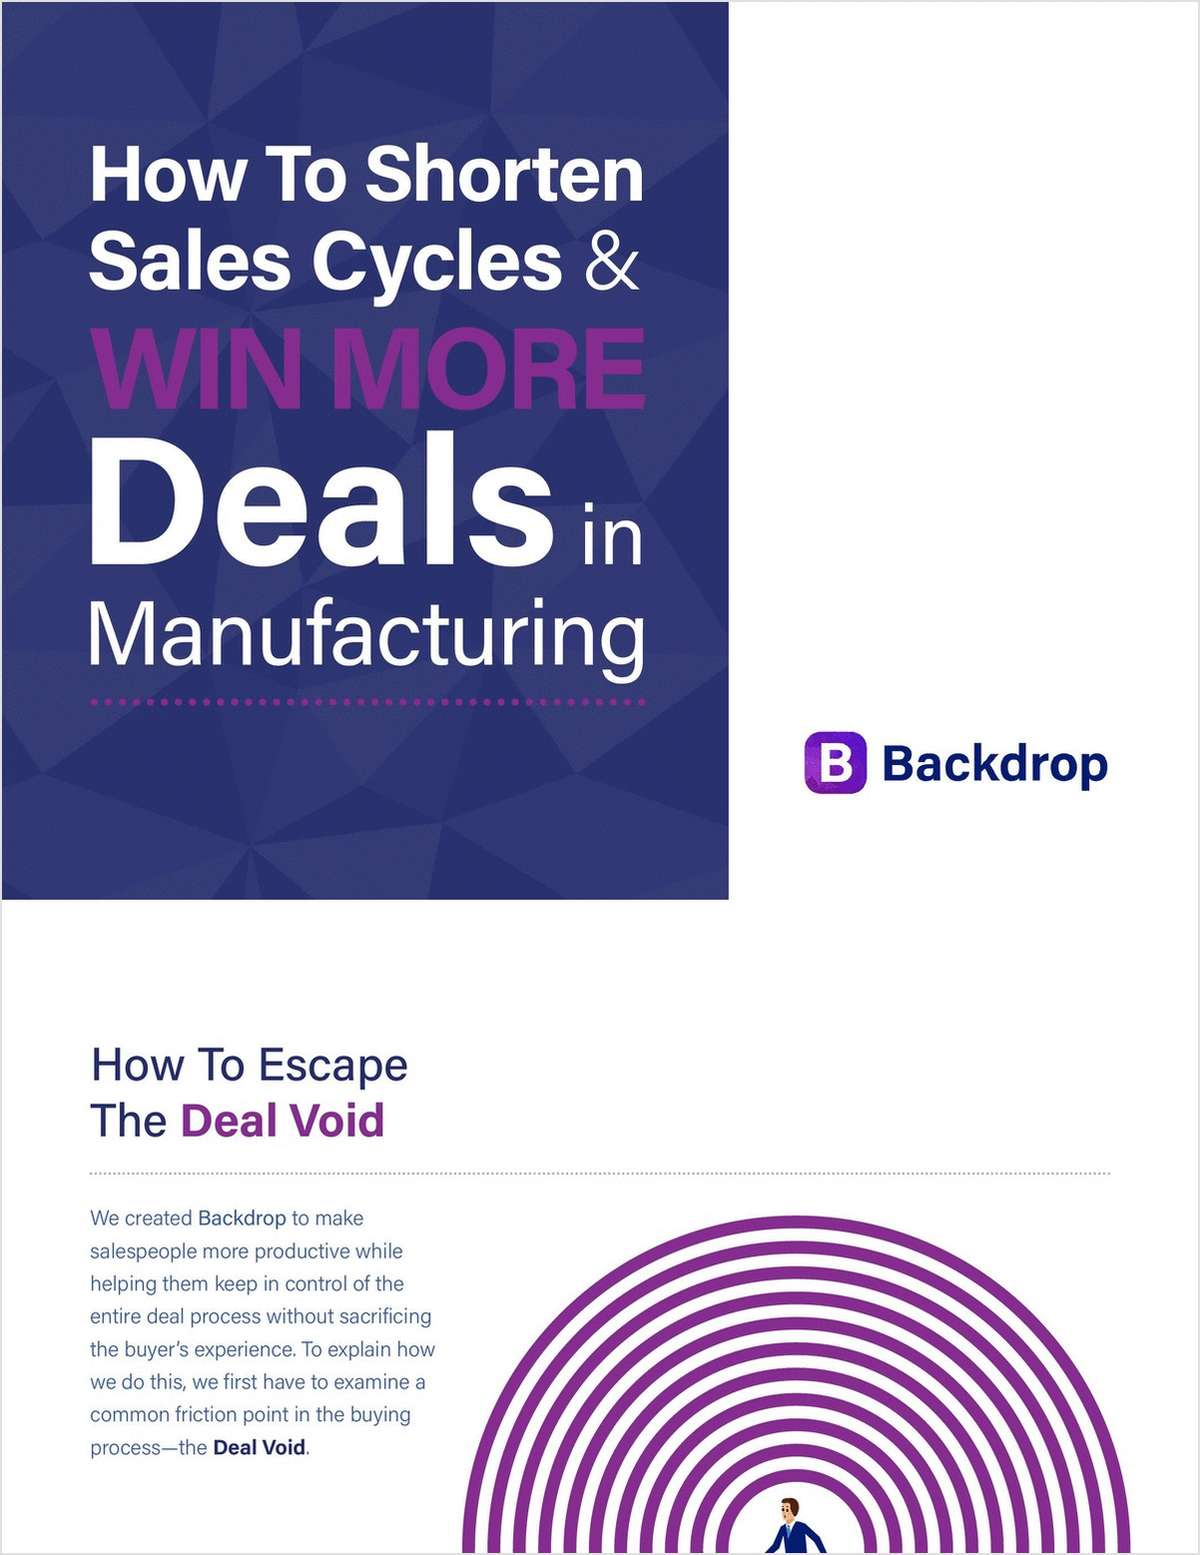 How To Shorten Sales Cycles and Win More Deals in Manufacturing